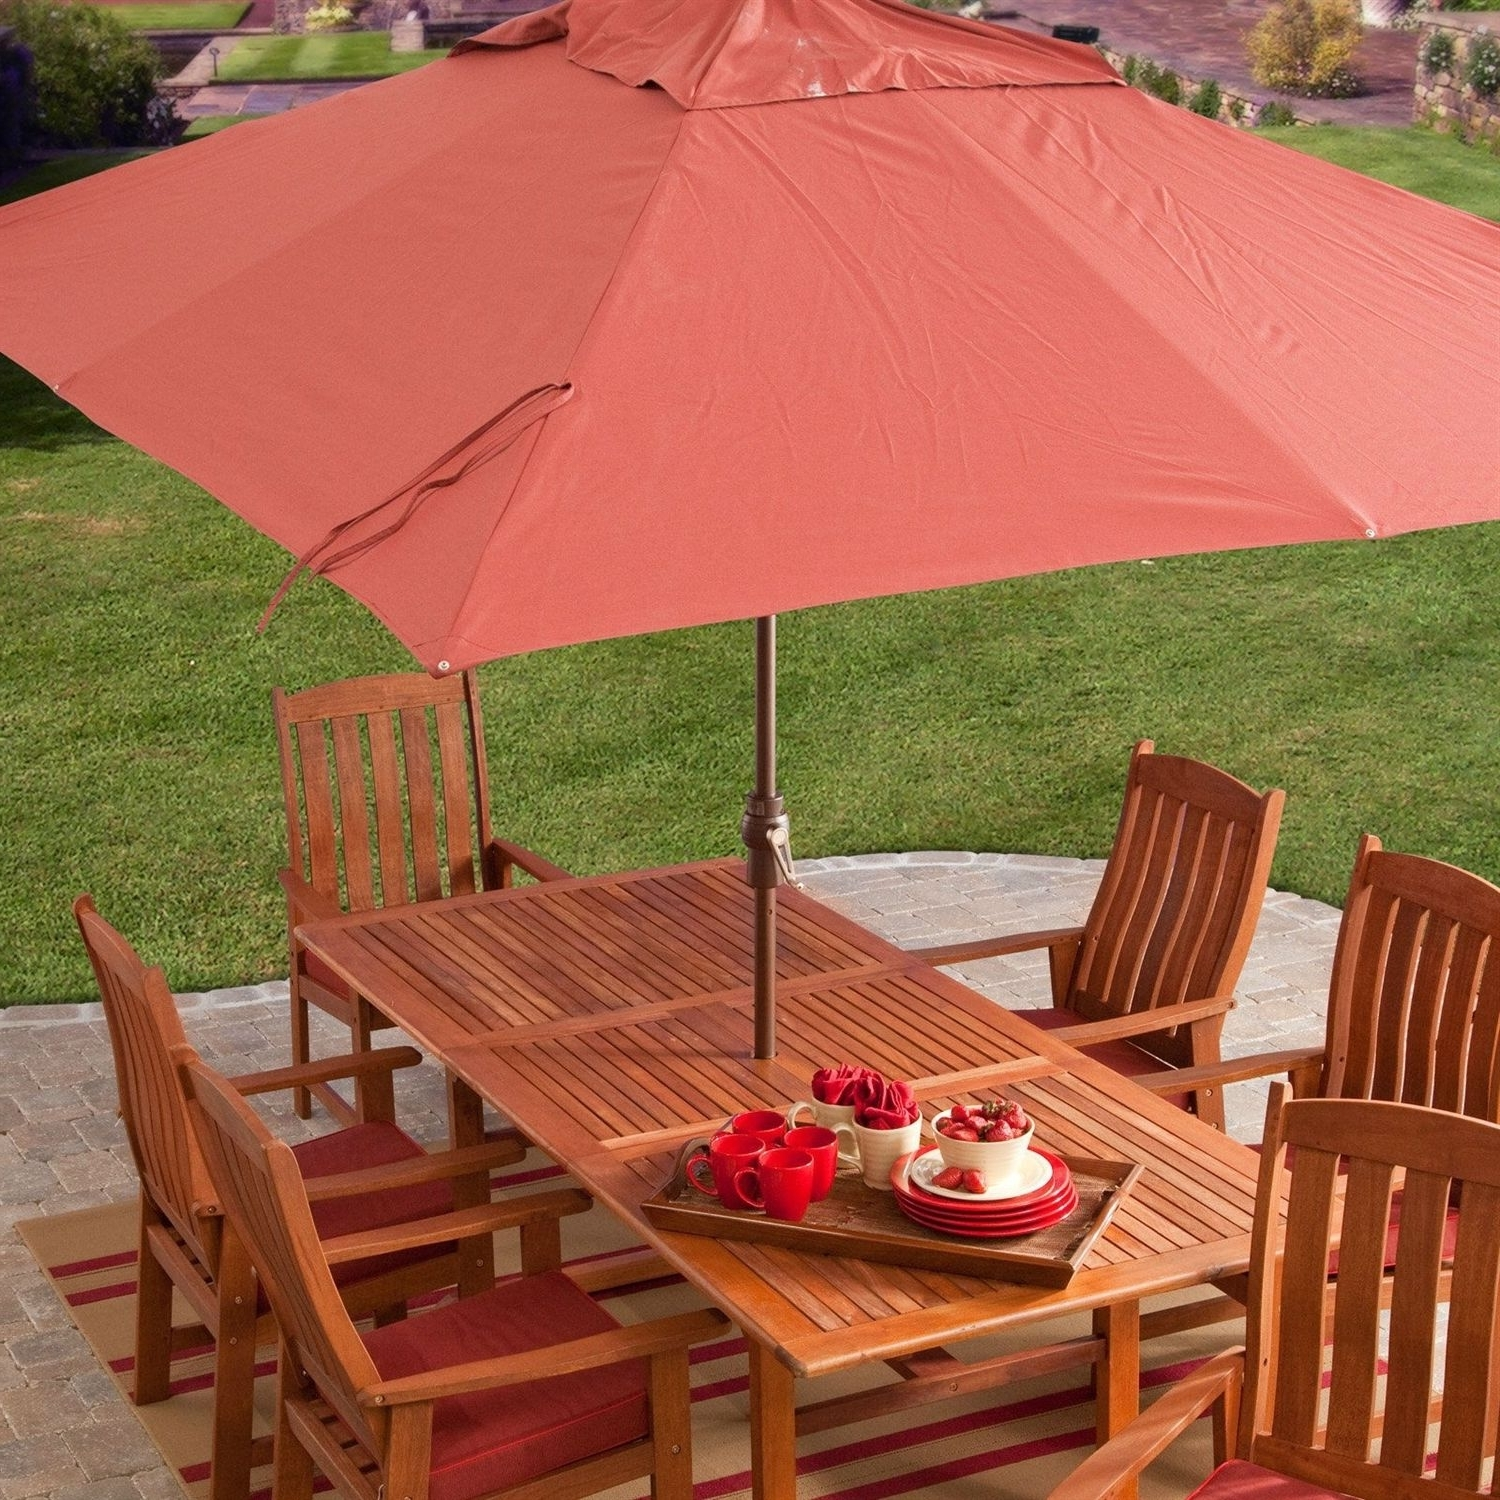 Most Recently Released 8 X 11 Ft Rectangle Patio Umbrella With Red Orange Terracotta Canopy Pertaining To Rectangular Patio Umbrellas (View 10 of 20)